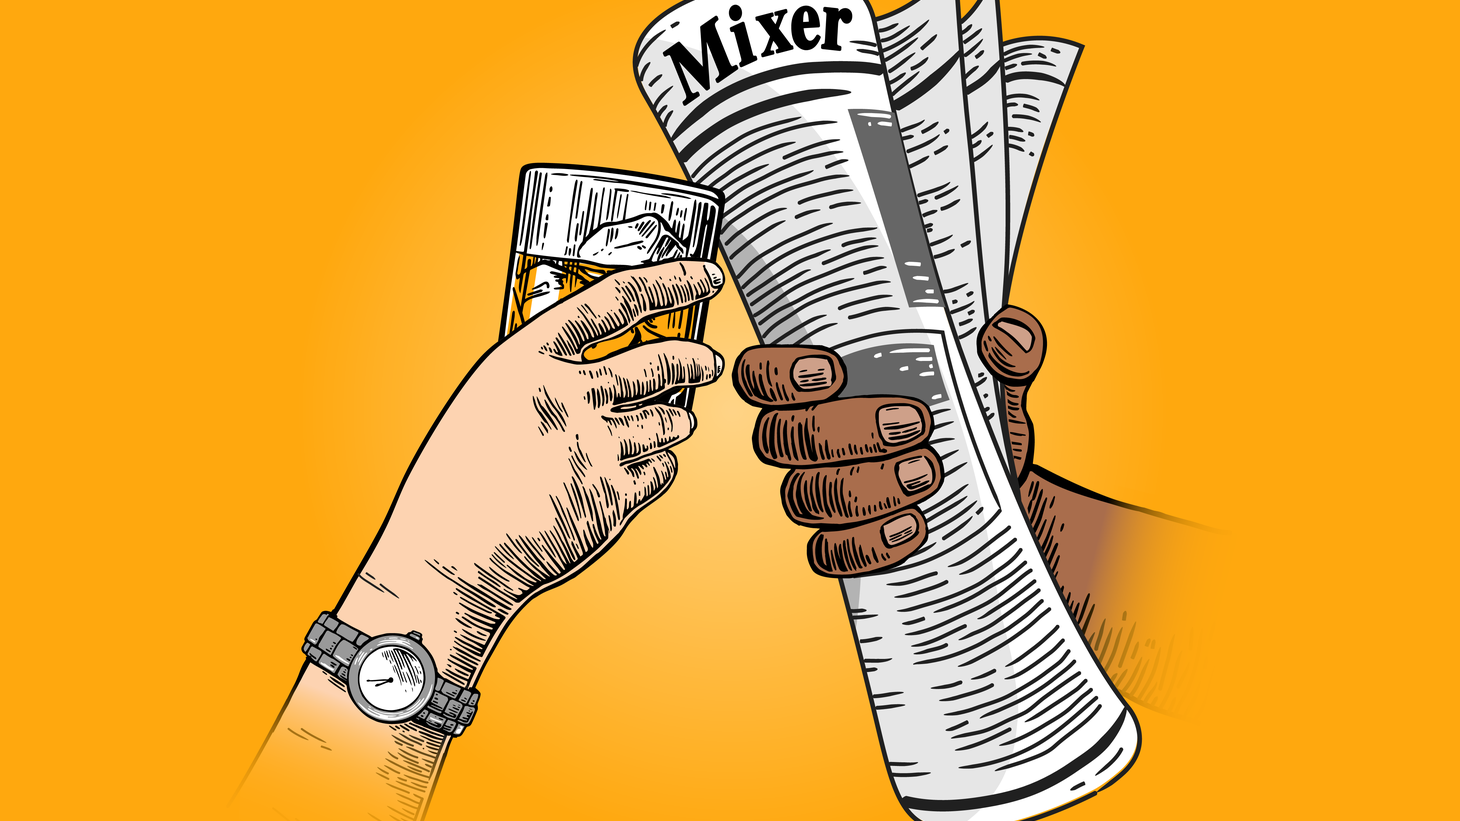 Which Way, LA? host Warren Olney, David Zahniser of the Los Angeles Times and Gillian Flaccus of the Associated Press join KCRW's Steve Chiotakis for this week's Mixer.